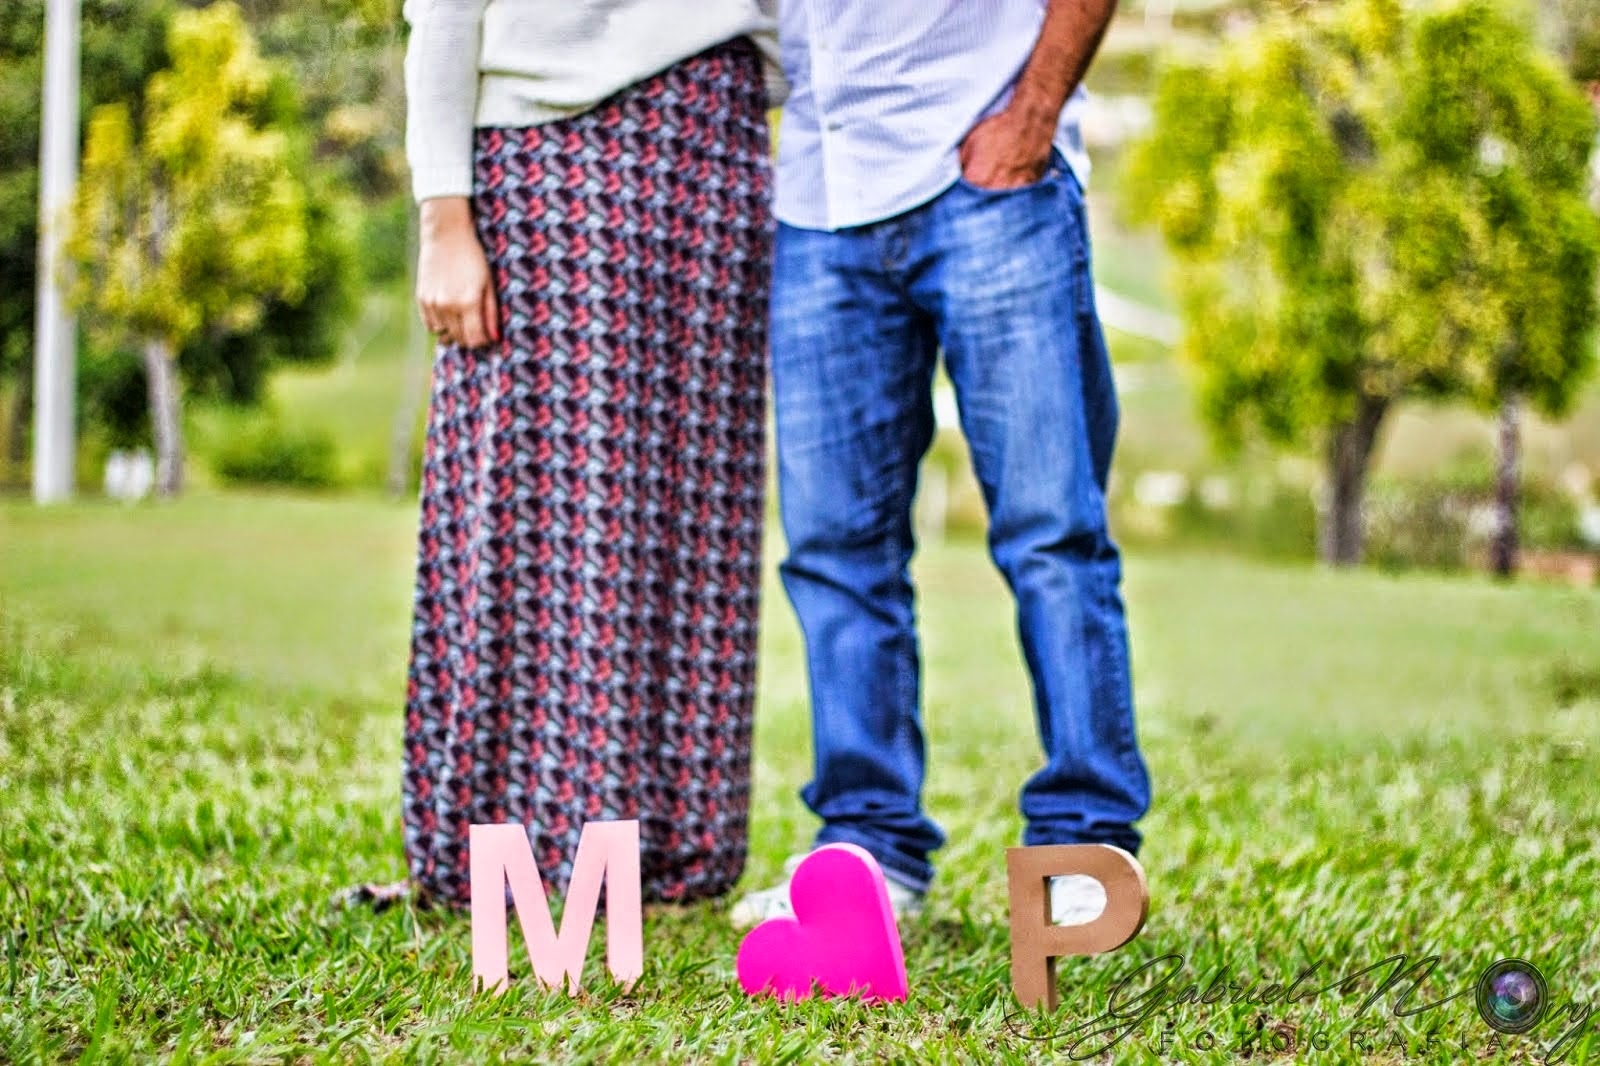 Engagement session com letras 3D Mariana e Paulo